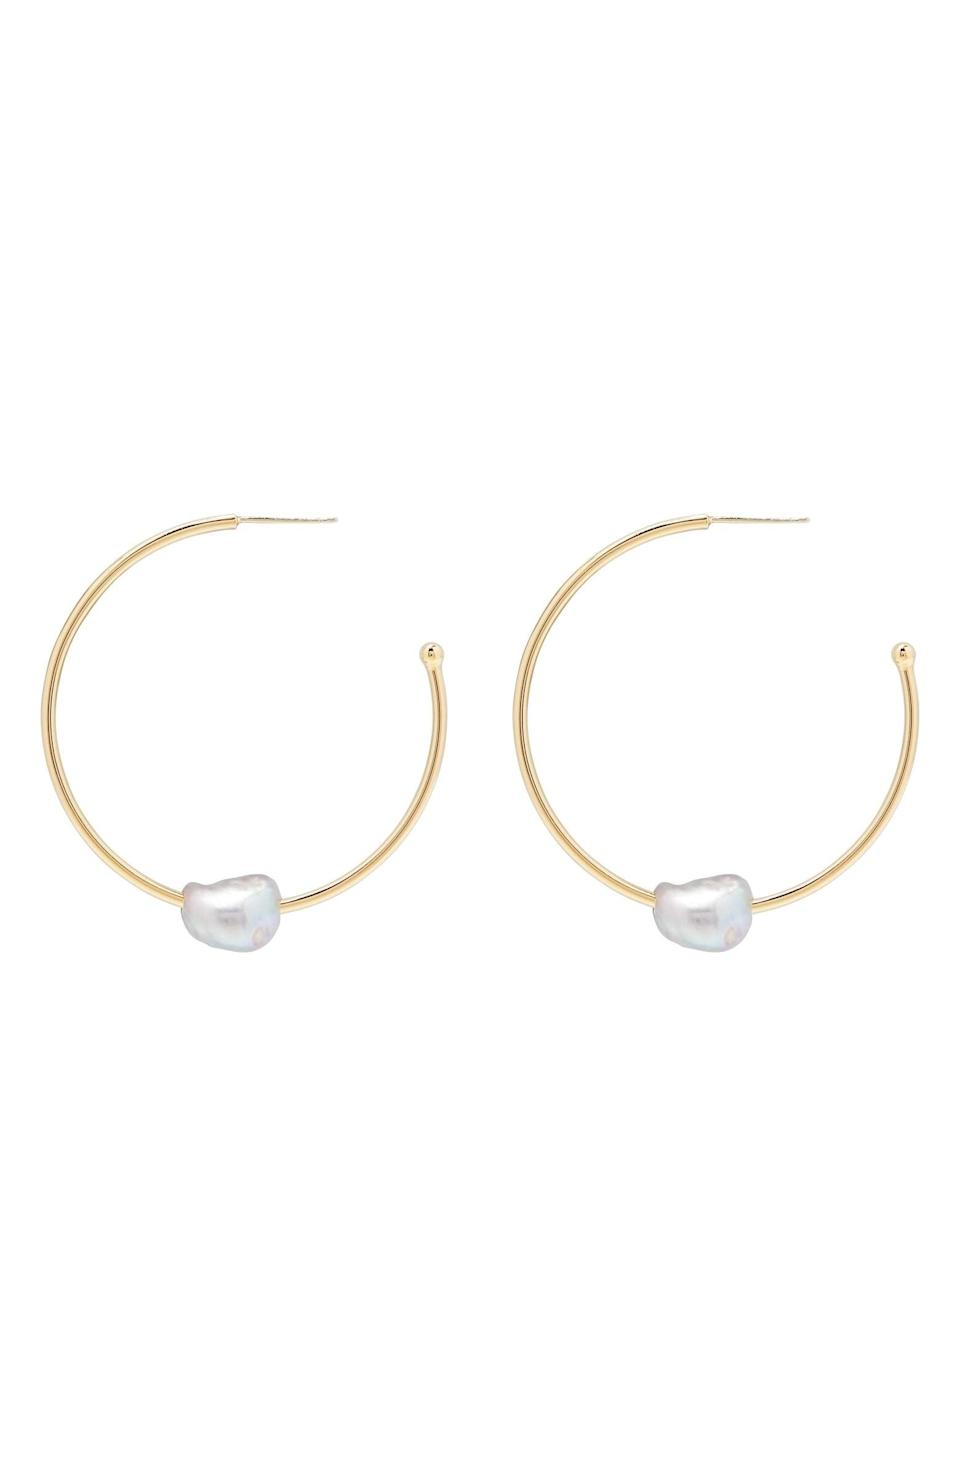 <p><span>Gorjana Perla Imitation Pearl Hoop Earrings</span> ($25, originally $60)</p>